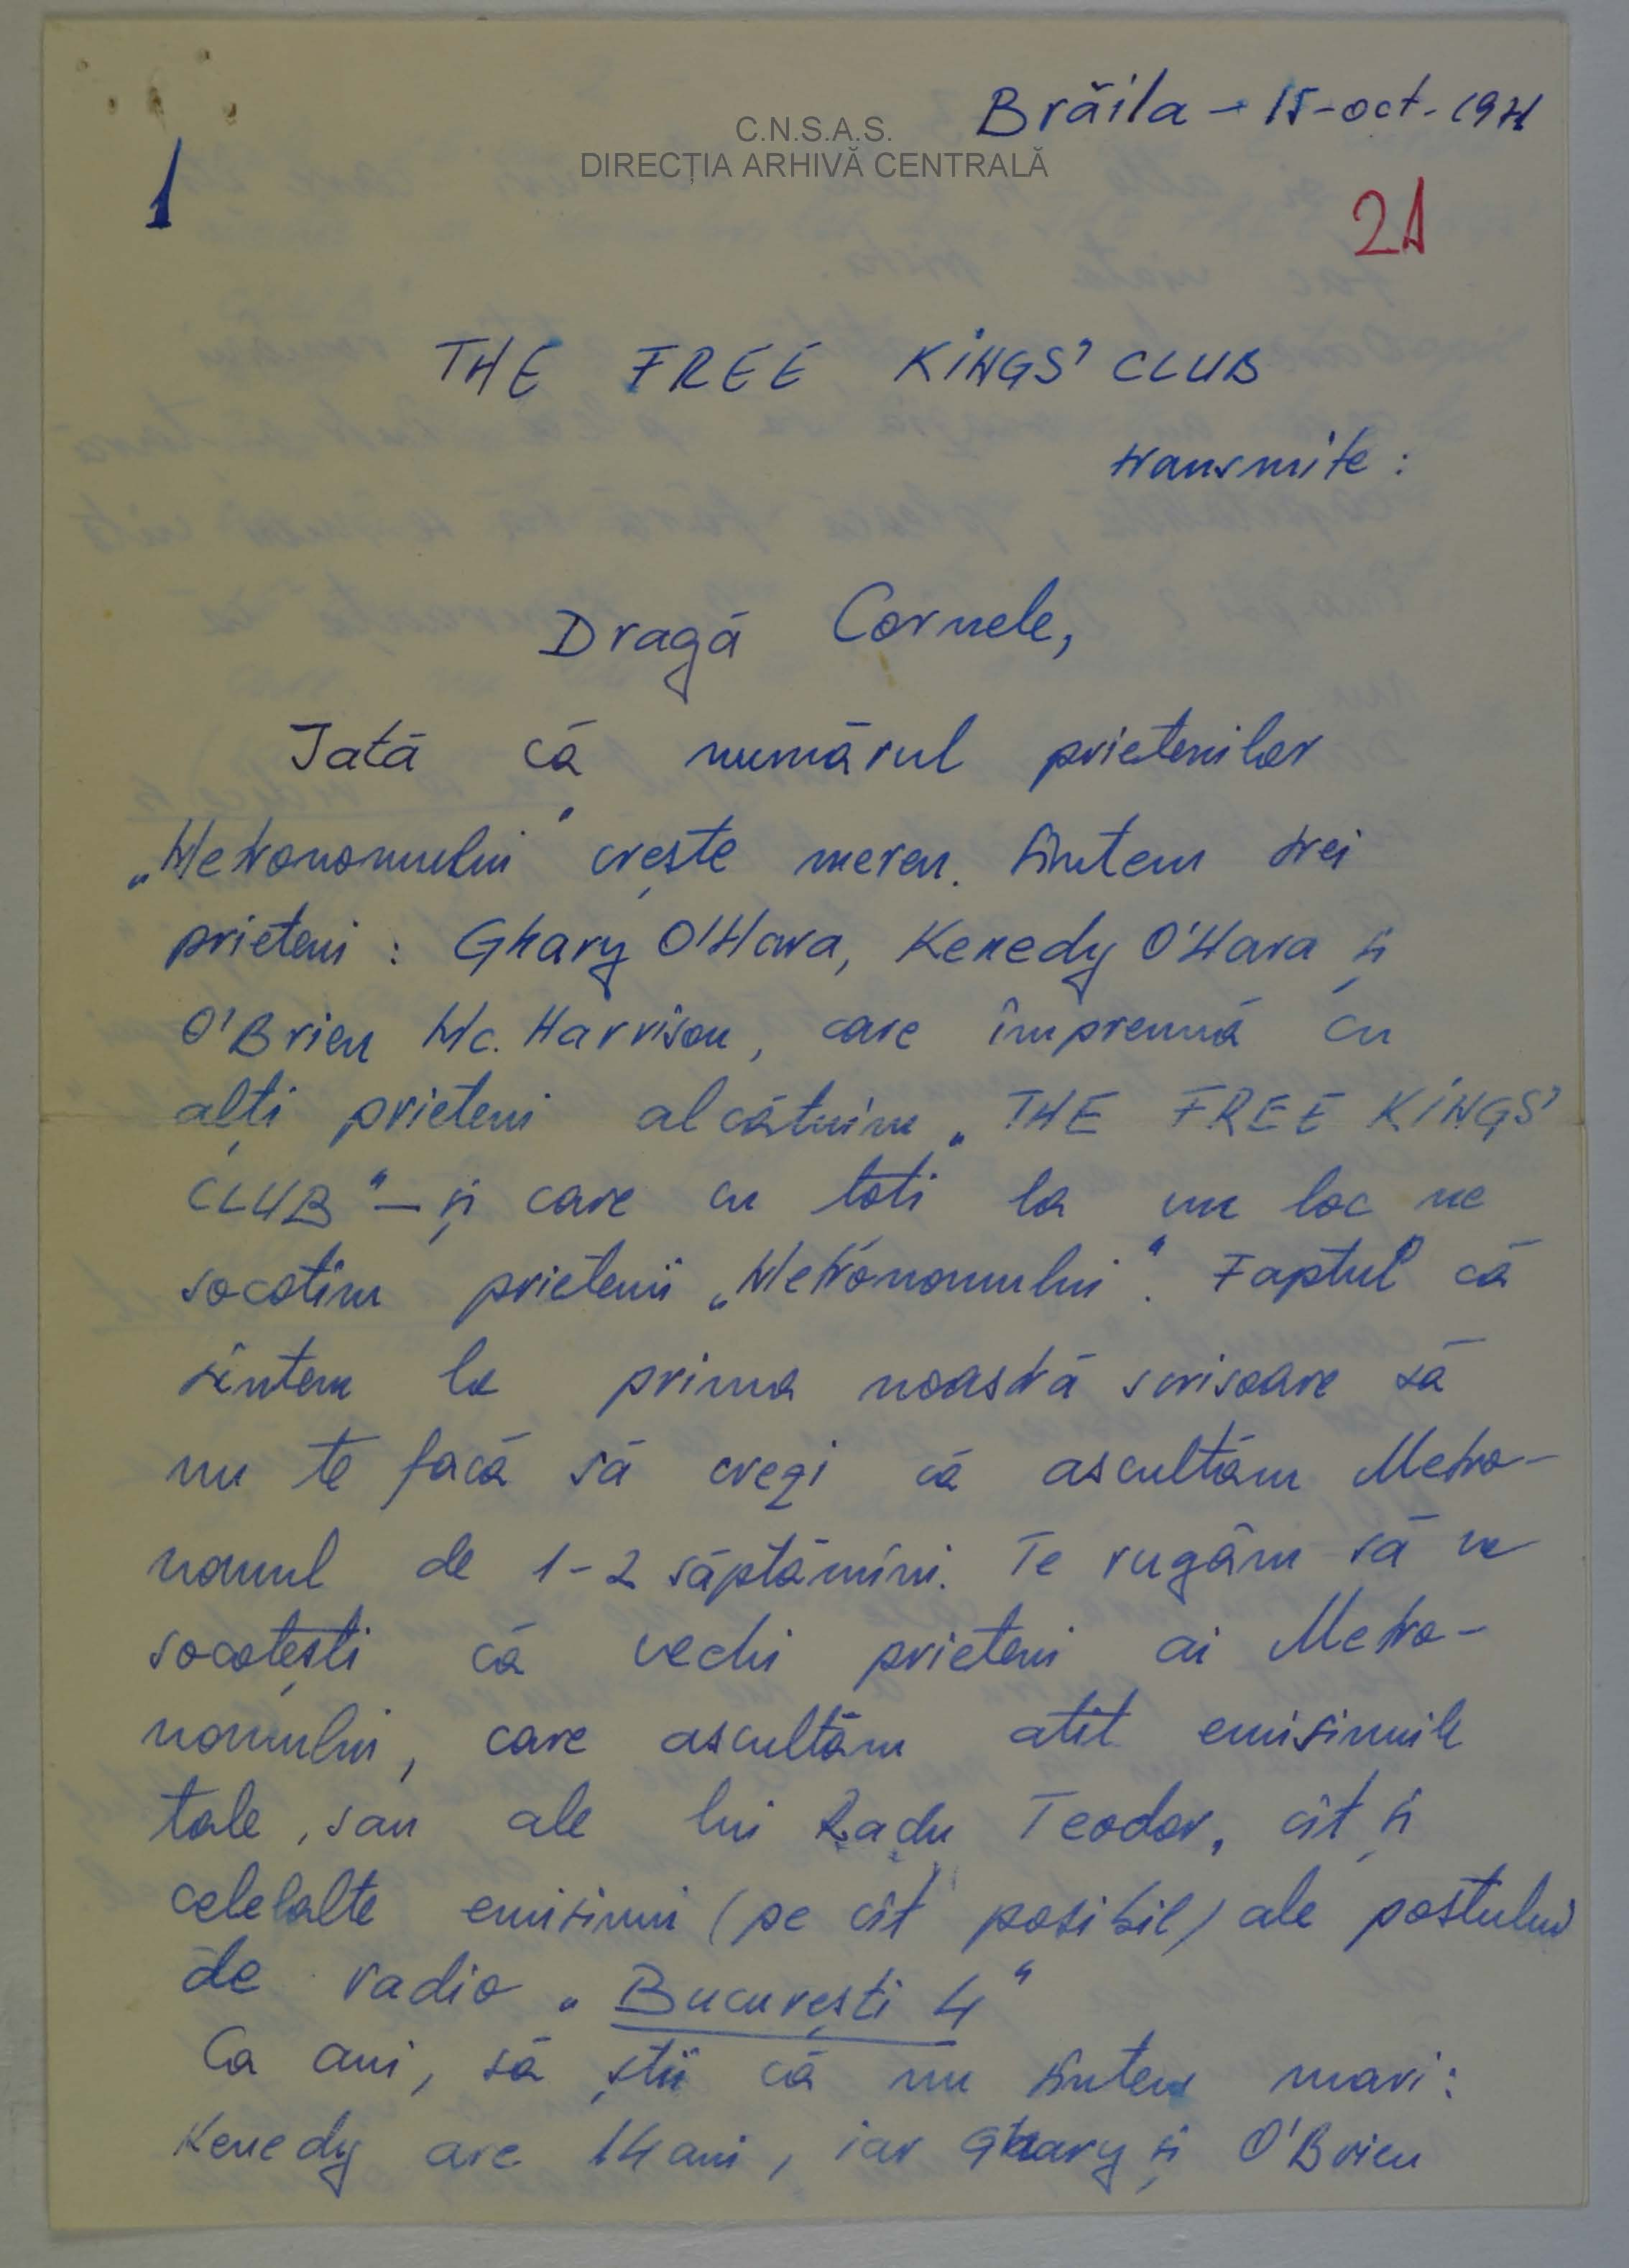 First page of the letter sent to Cornel Chiriac by the 'Club of the Free Kings'